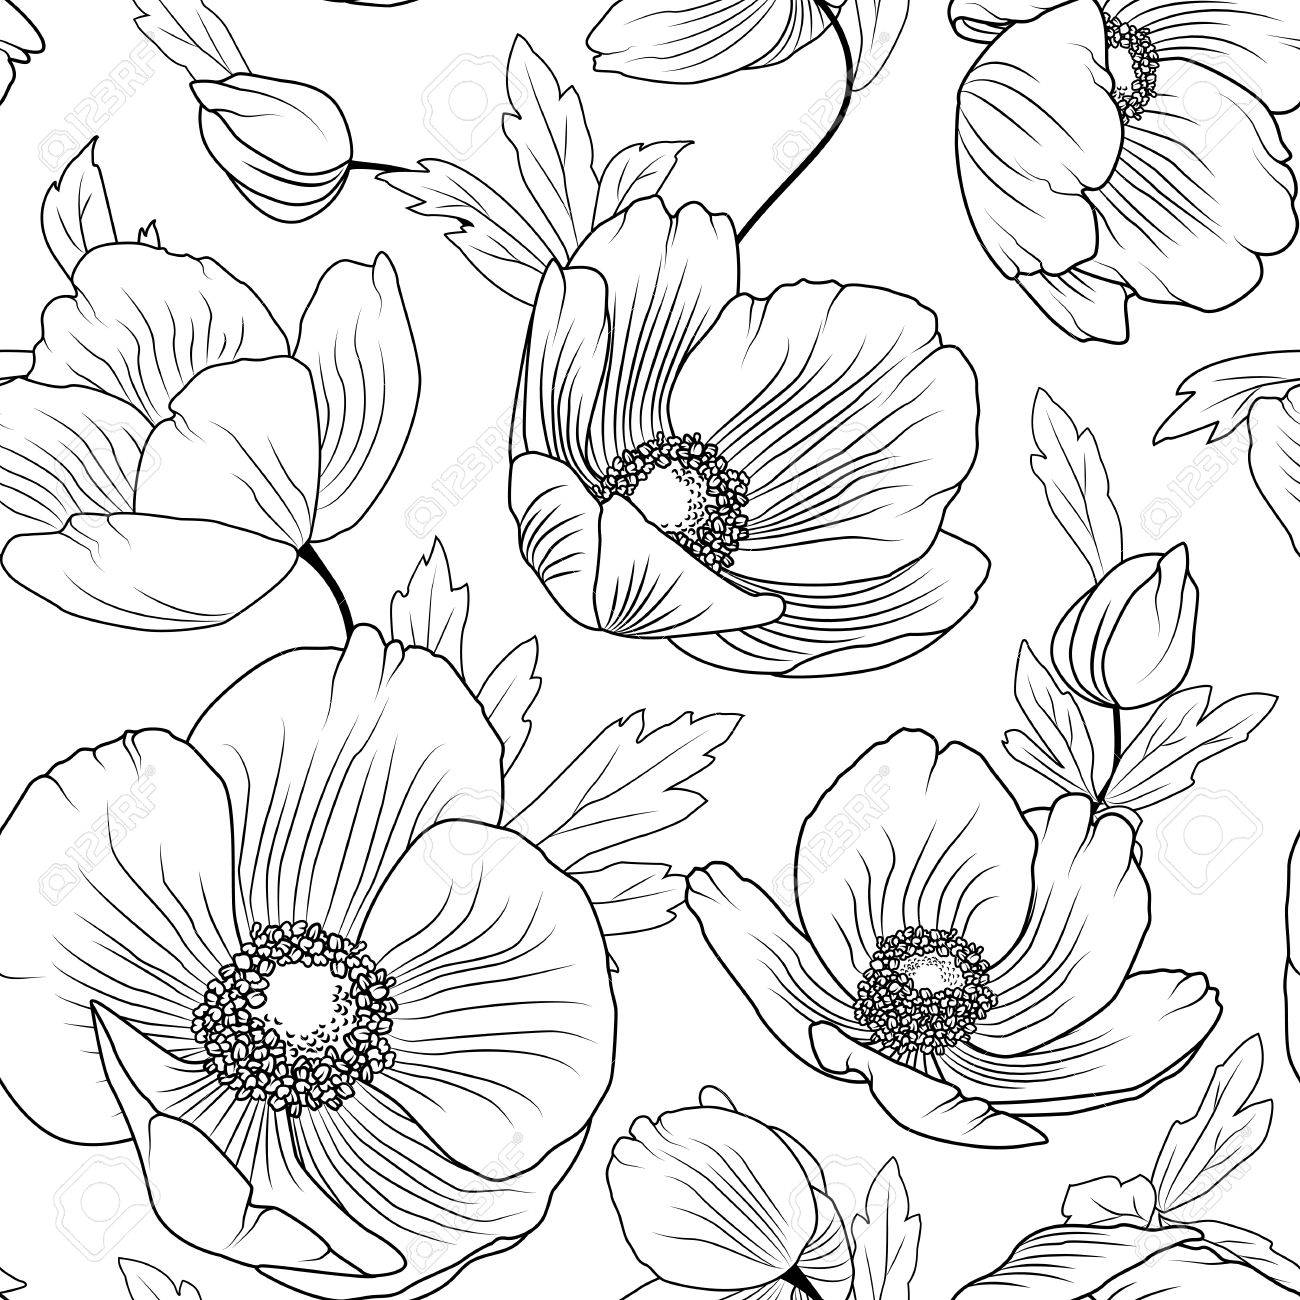 Poppy flowers buds leaves seamless floral pattern texture detailed black outline drawing on white